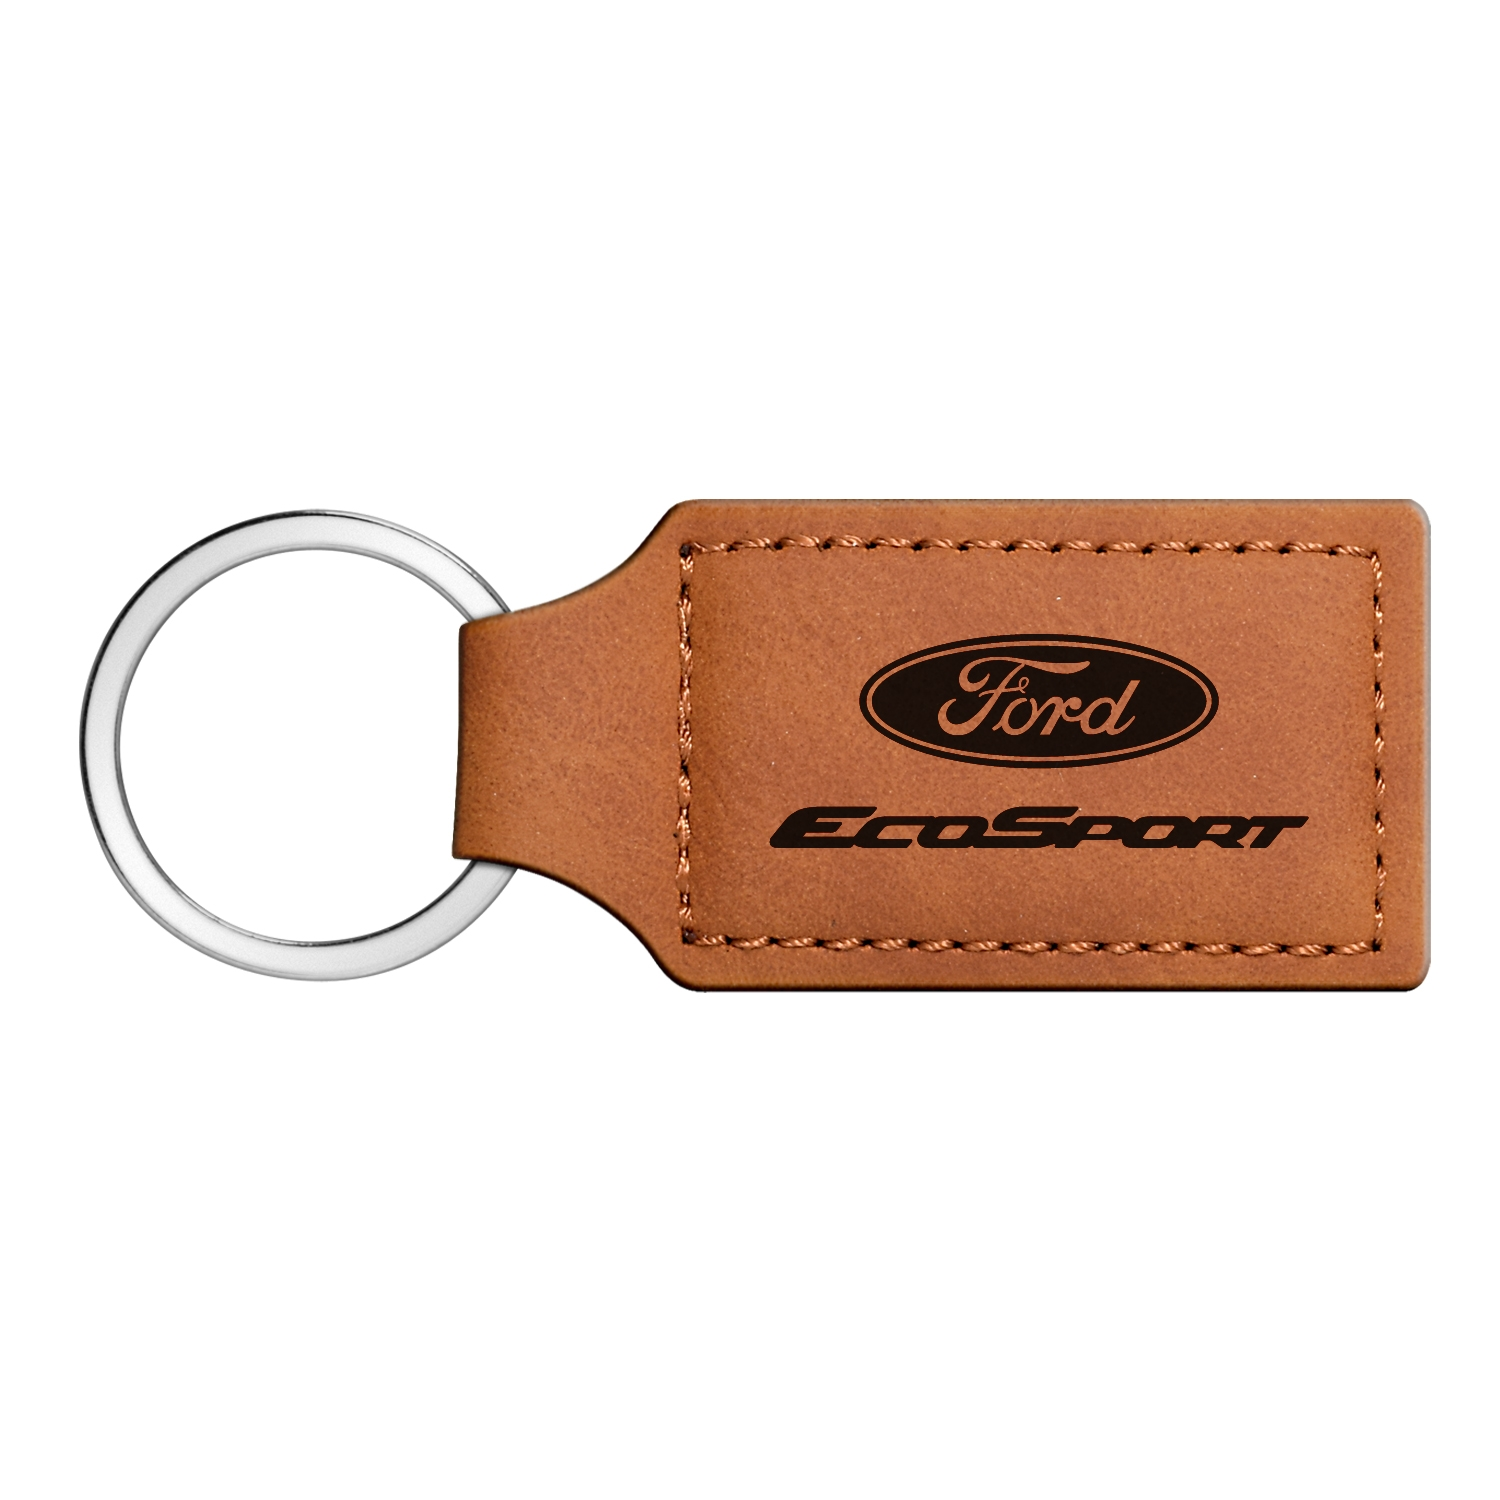 Ford EcoSport Rectangular Brown Leather Key Chain